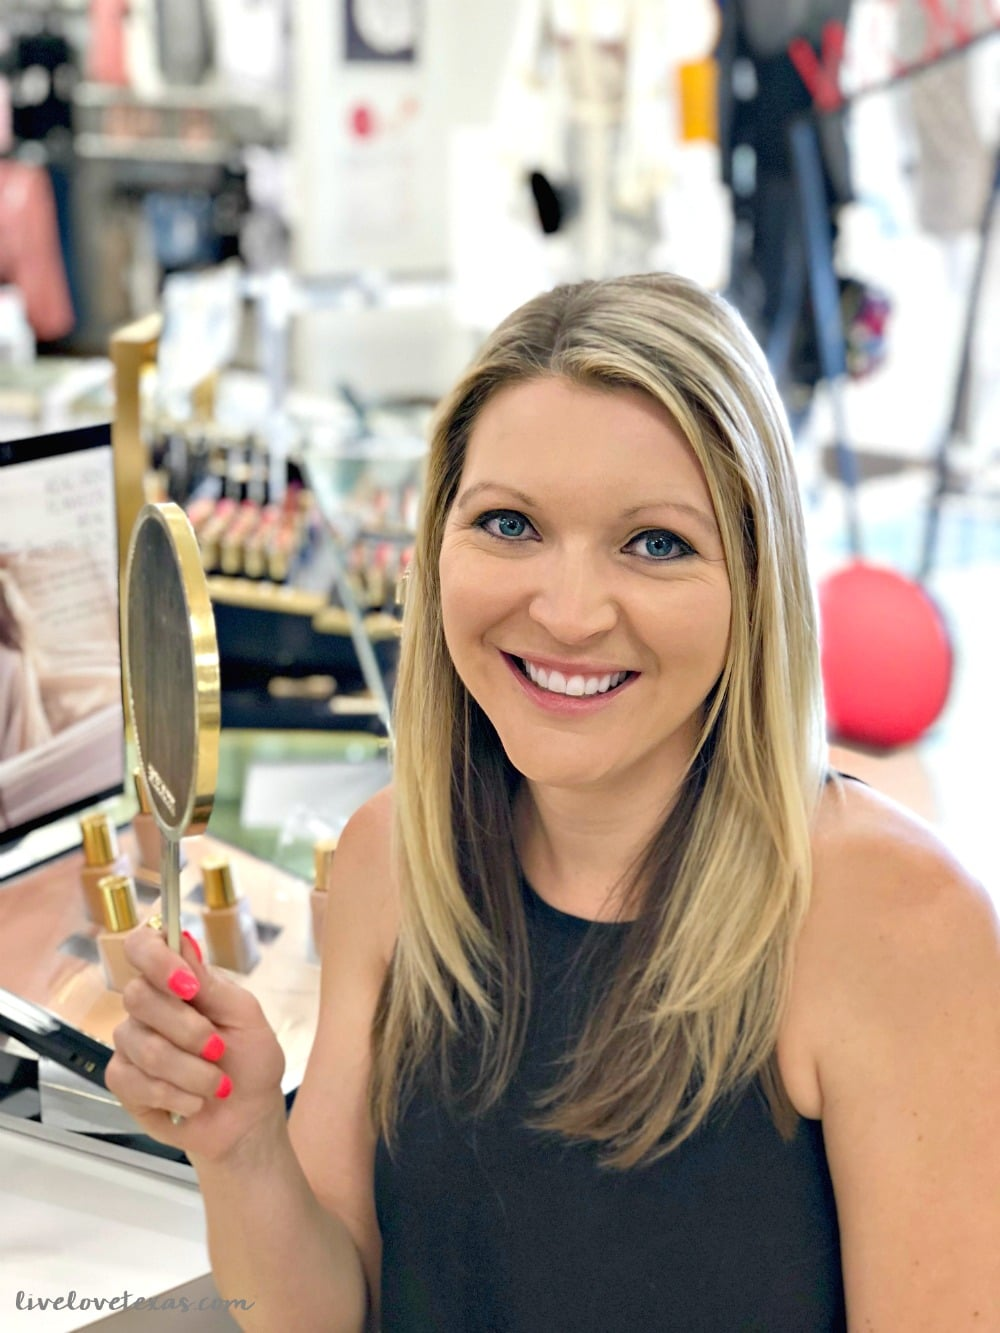 What is the Bealls Beauty Bar? Come check out all of your favorite brands at great prices along with complimentary beauty consultations so you can feel and look like the best version of you!